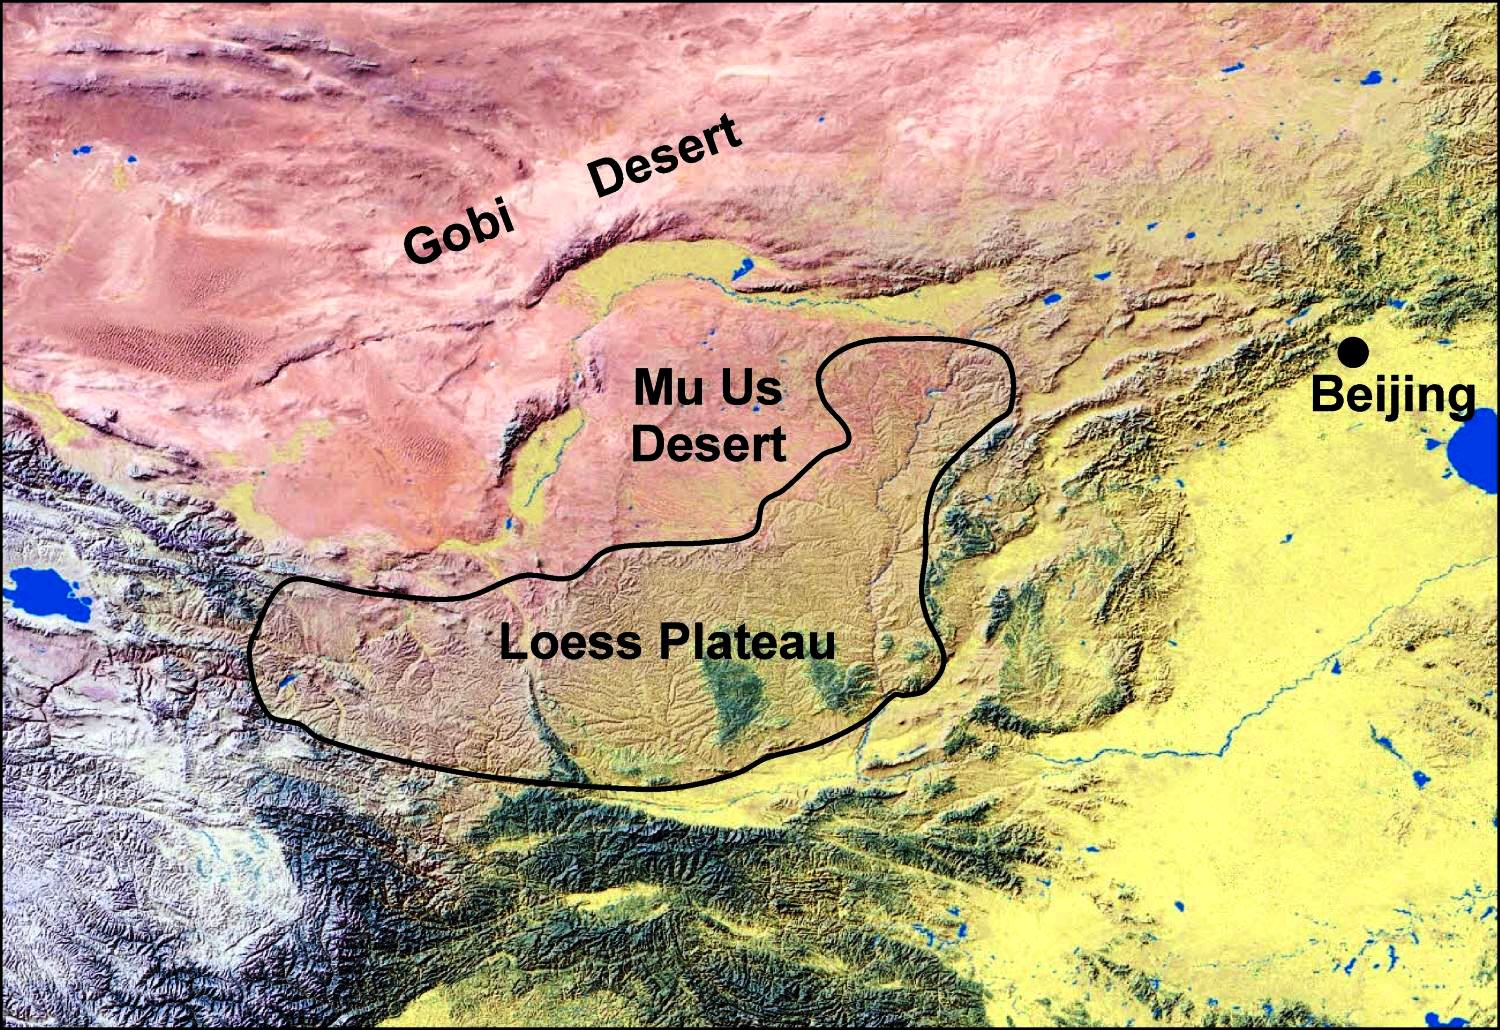 this map shows the location of chinas loess plateau in relationship to the mu us desert the gobi desert and the city of beijing